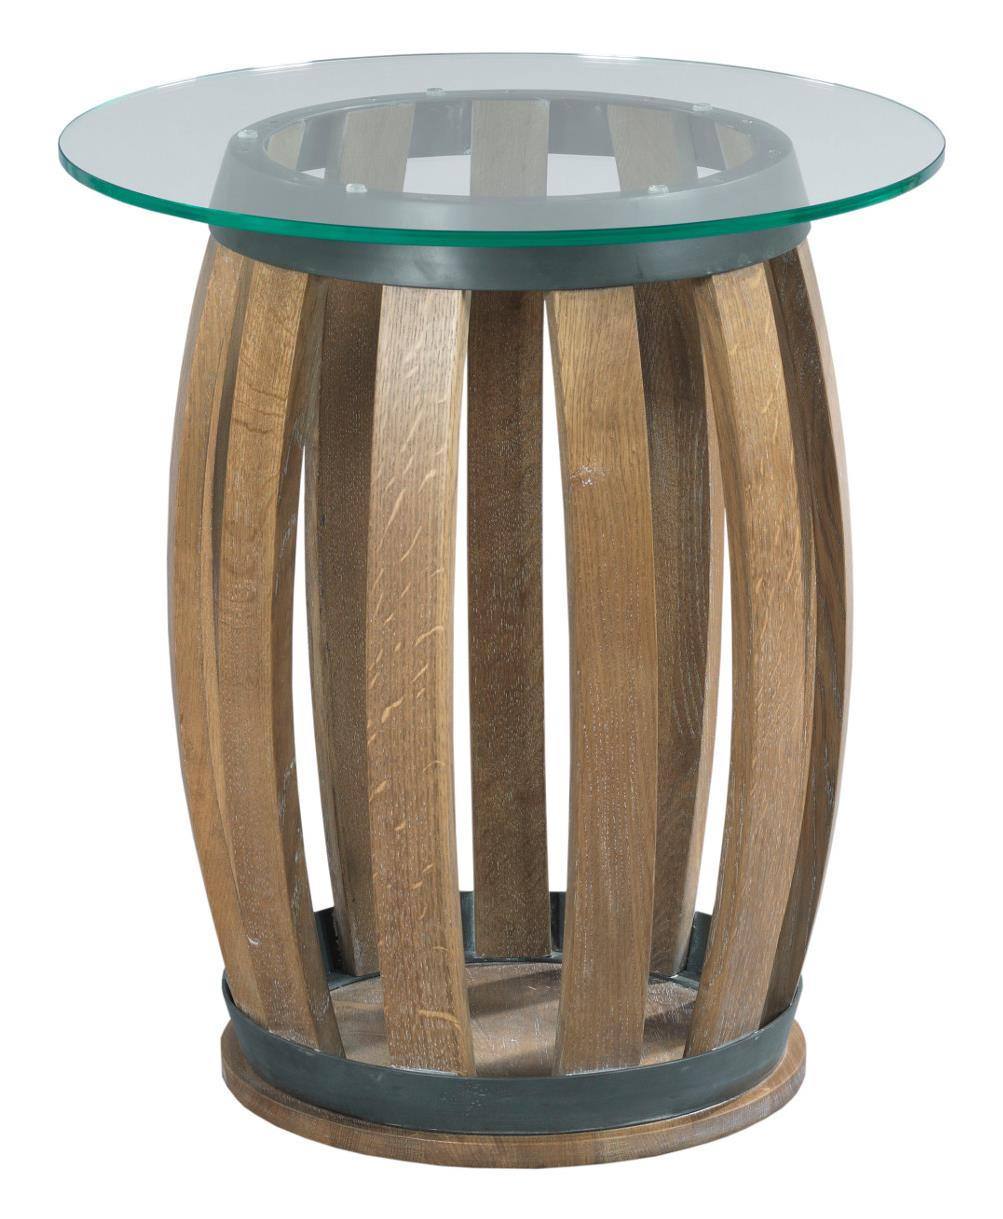 glass top accent table ikaittsttt decor ideas kincaid furniture stone ridge rustic wine barrel with hawthorne related gold marble concrete patio tripod lamp windham vita silvia